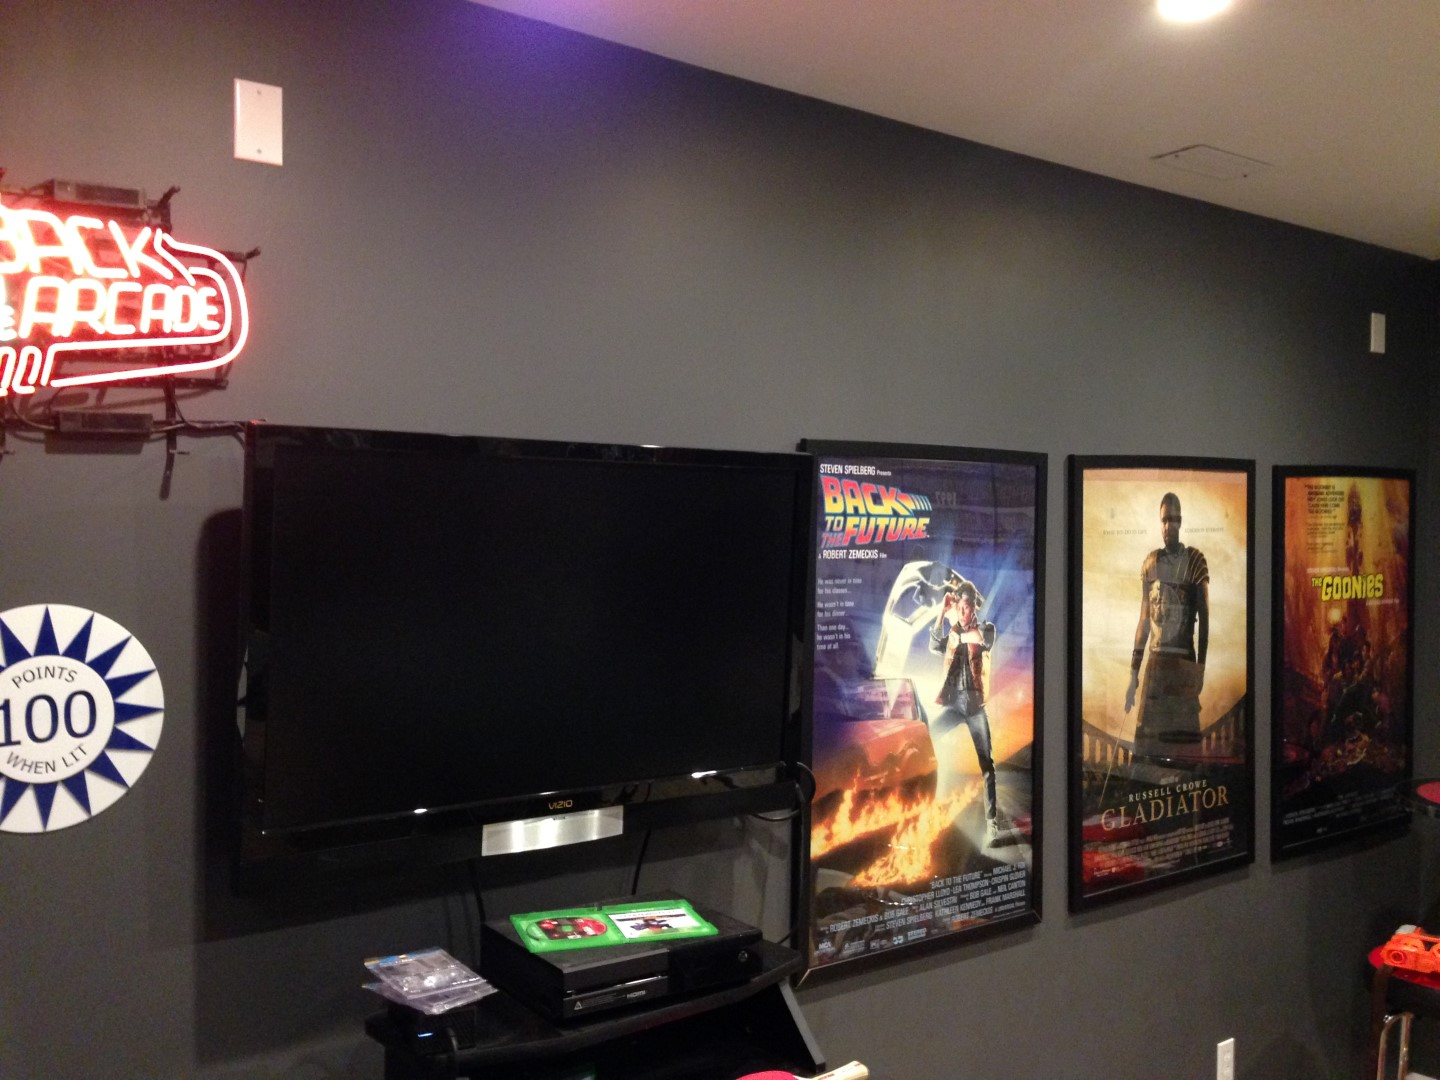 Movie posters plus game room TV